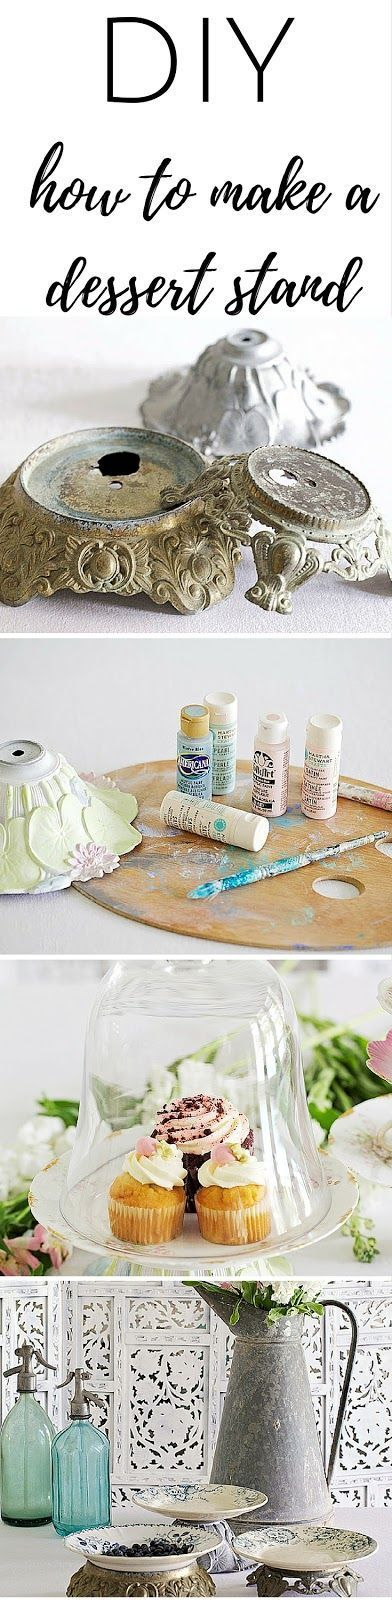 DIY - How To Make A Dessert Stand from Shabbyfufu.